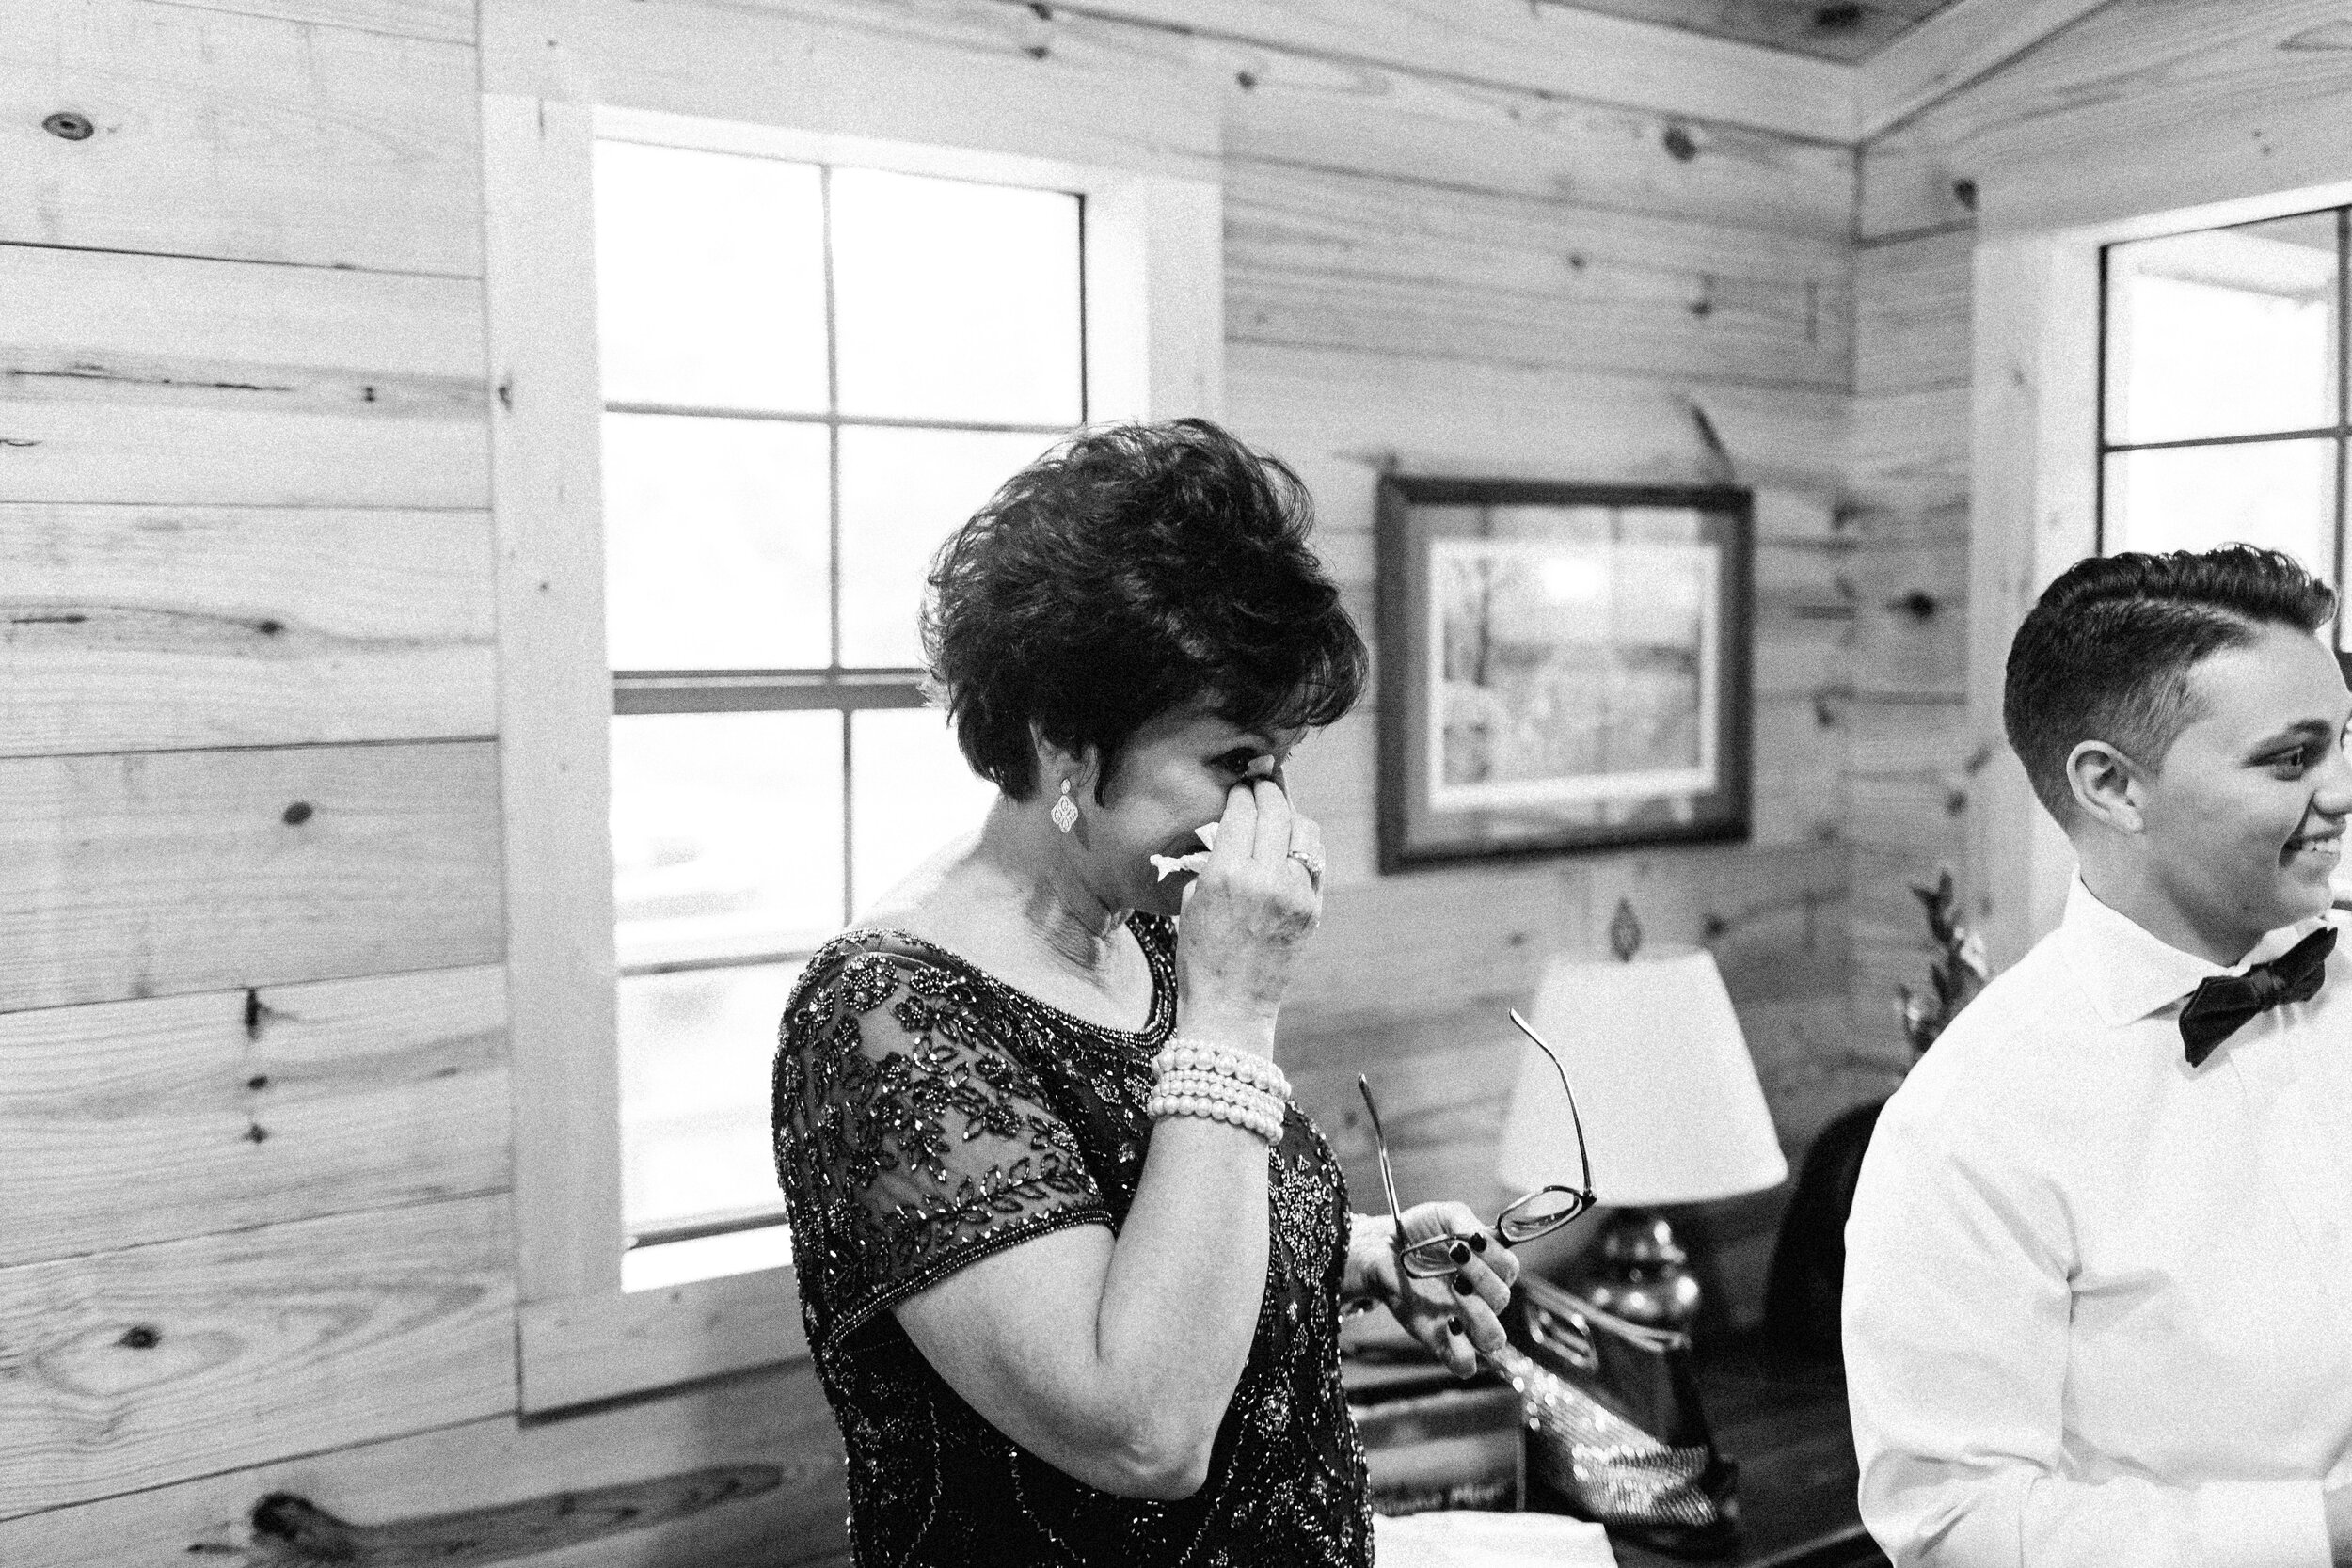 atlanta_wedding_photographers_georgia_same_sex_rustic_barn_farm_lesbian_weddings_inclusive_1270.jpg